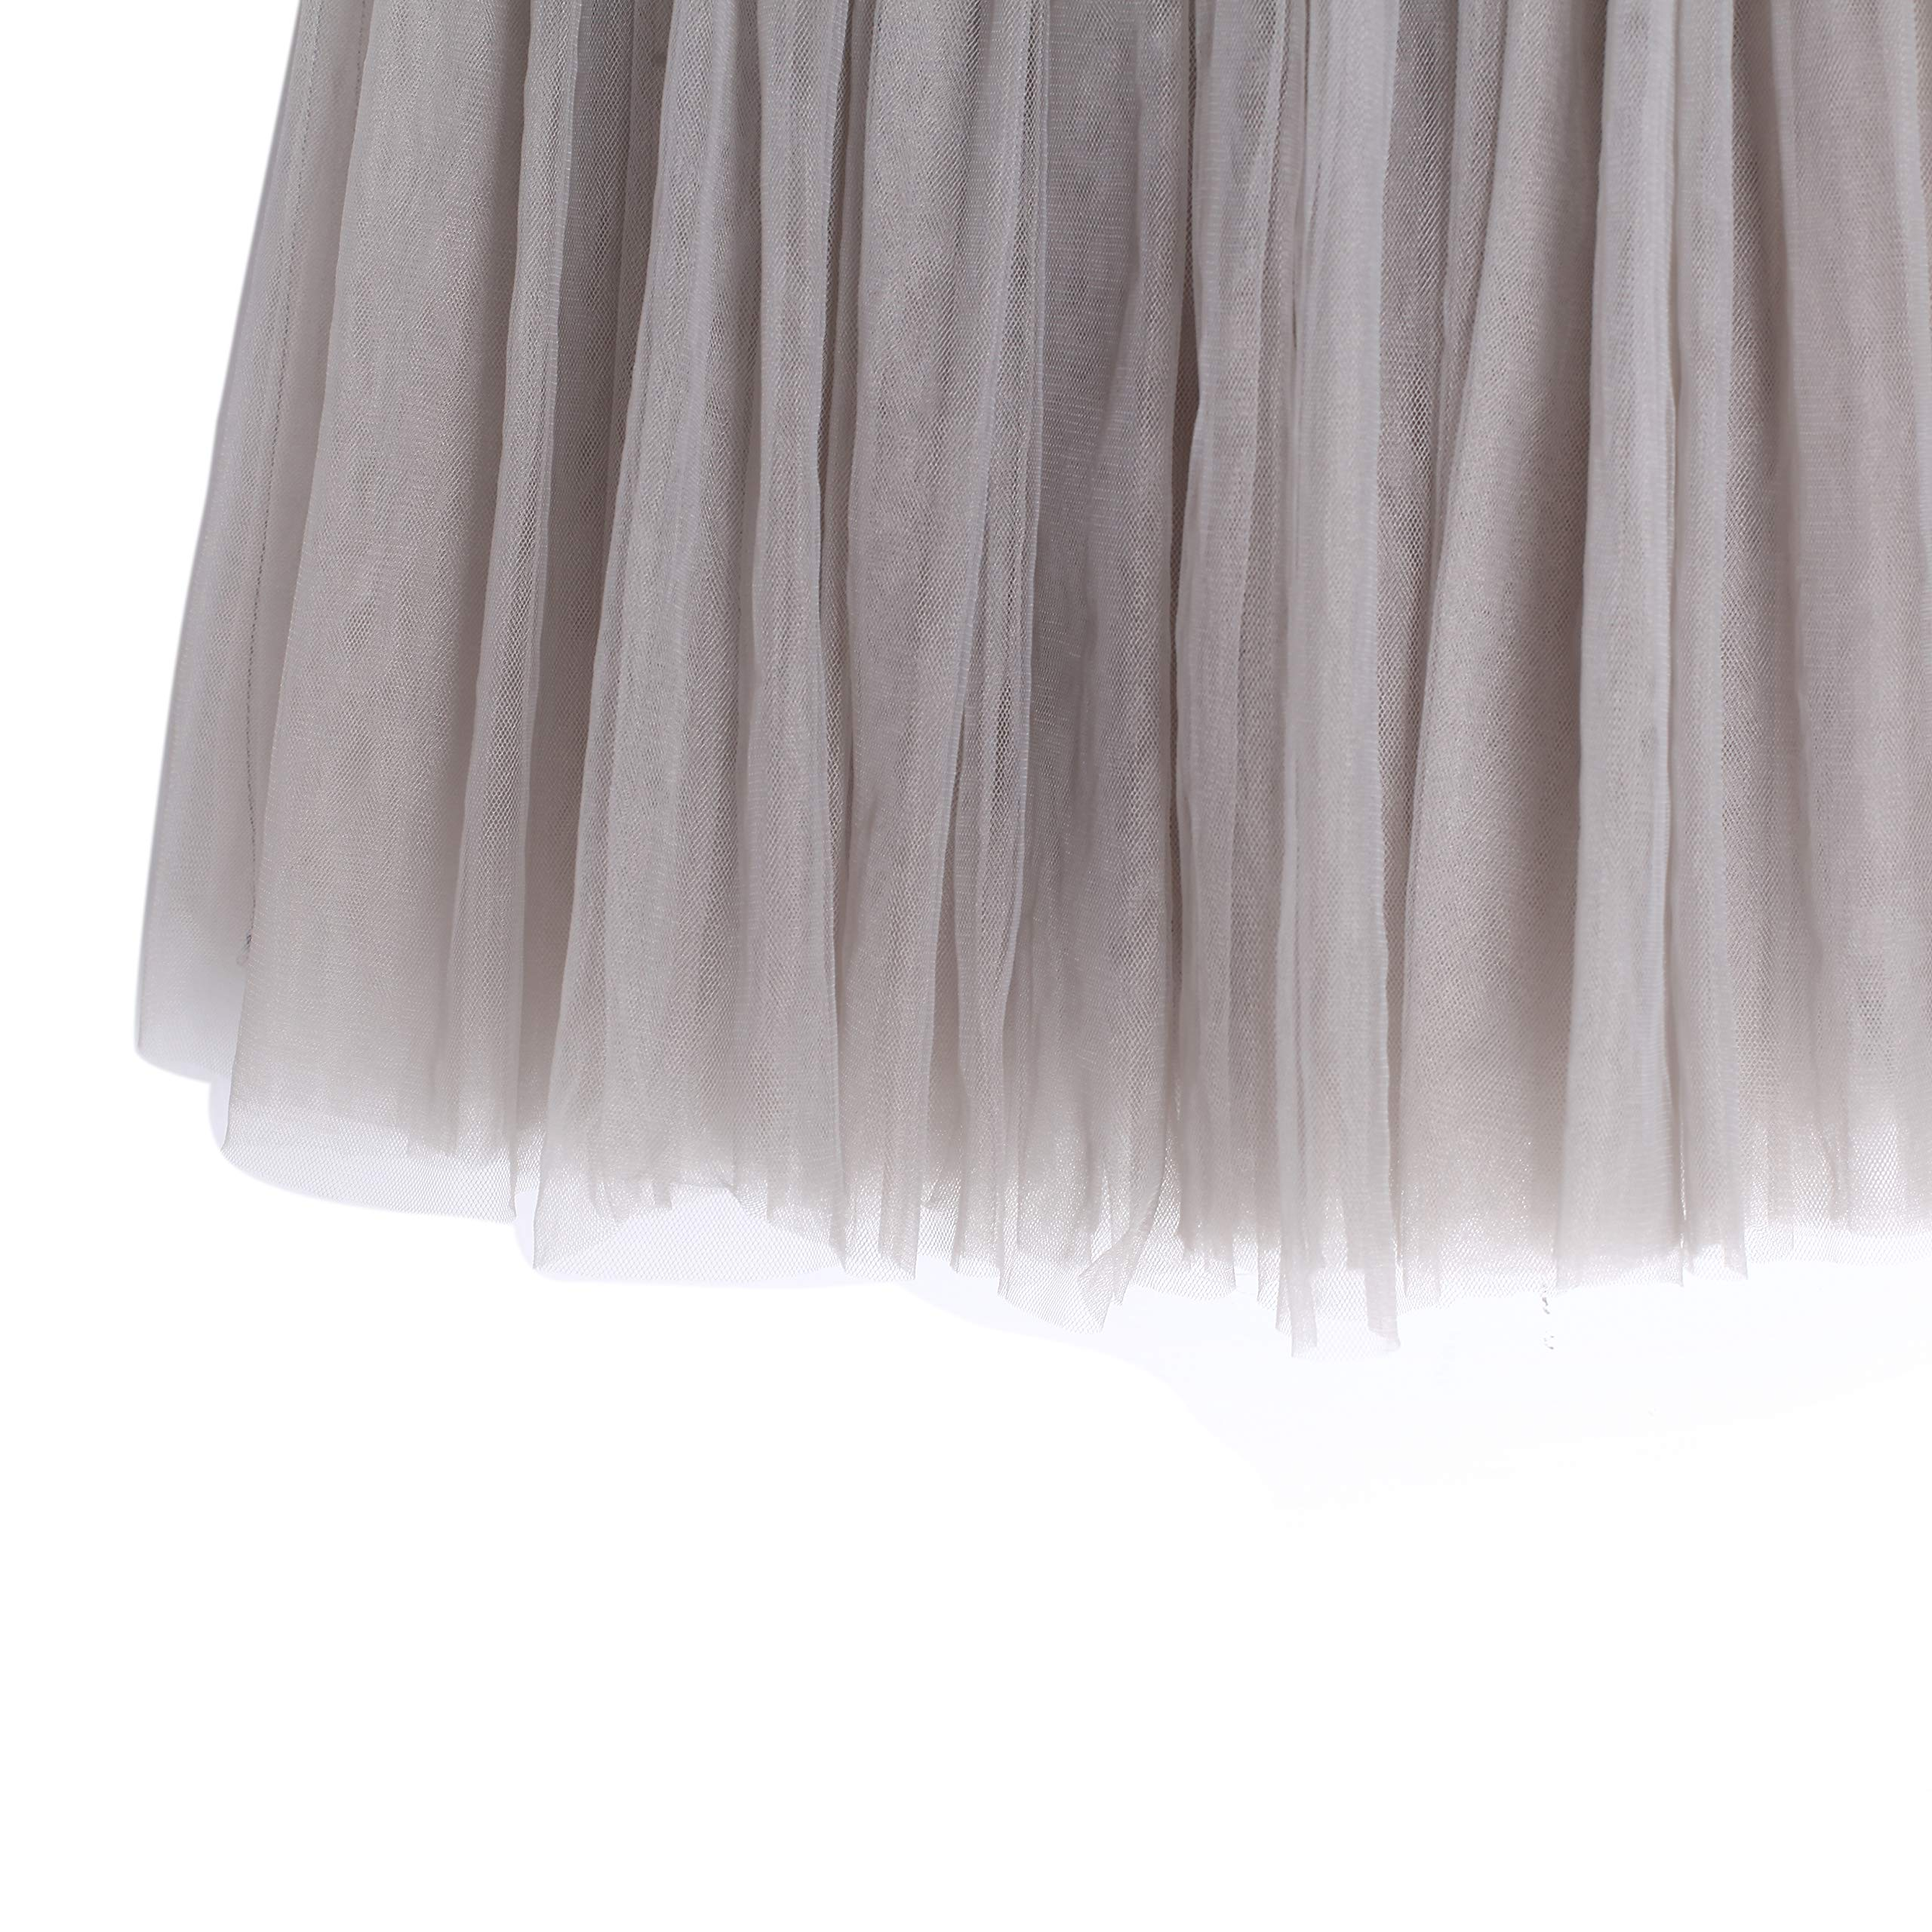 Flofallzique Tulle Tutu Girls Skirts for 1-12 Years Old Dancing Party Toddler Clothes(6, Gray) by Flofallzique (Image #5)